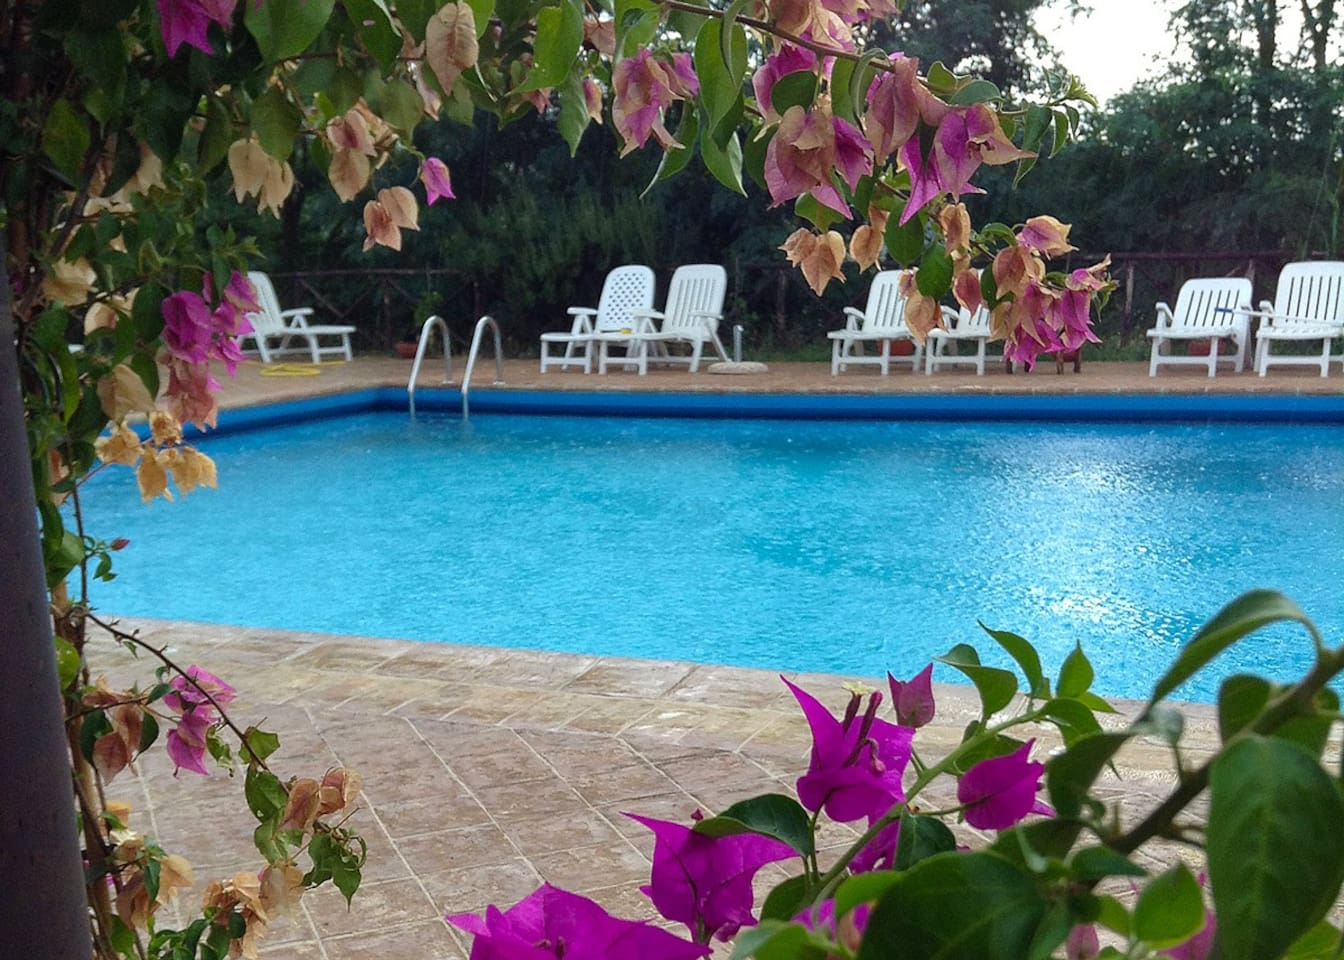 Relax by the large 8x16 meter pool. Pool house has changing room, bathroom, shower and fridge